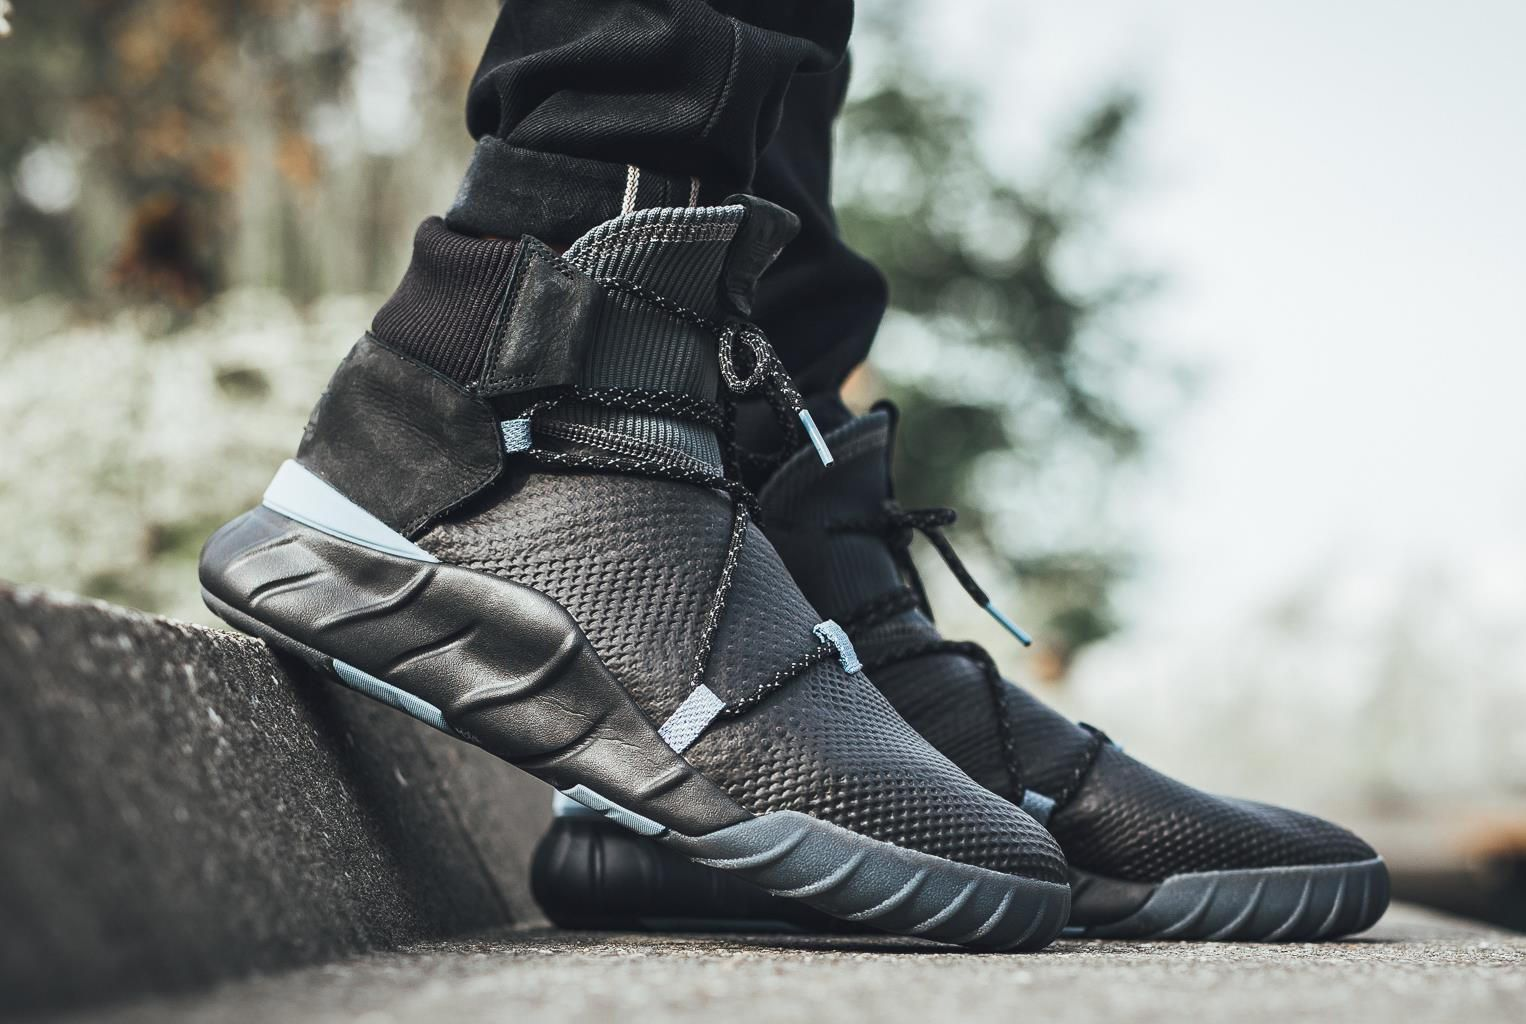 Core Black Coats The adidas Tubular X 2.0 Primeknit • KicksOnFire ... b6acafb85e1